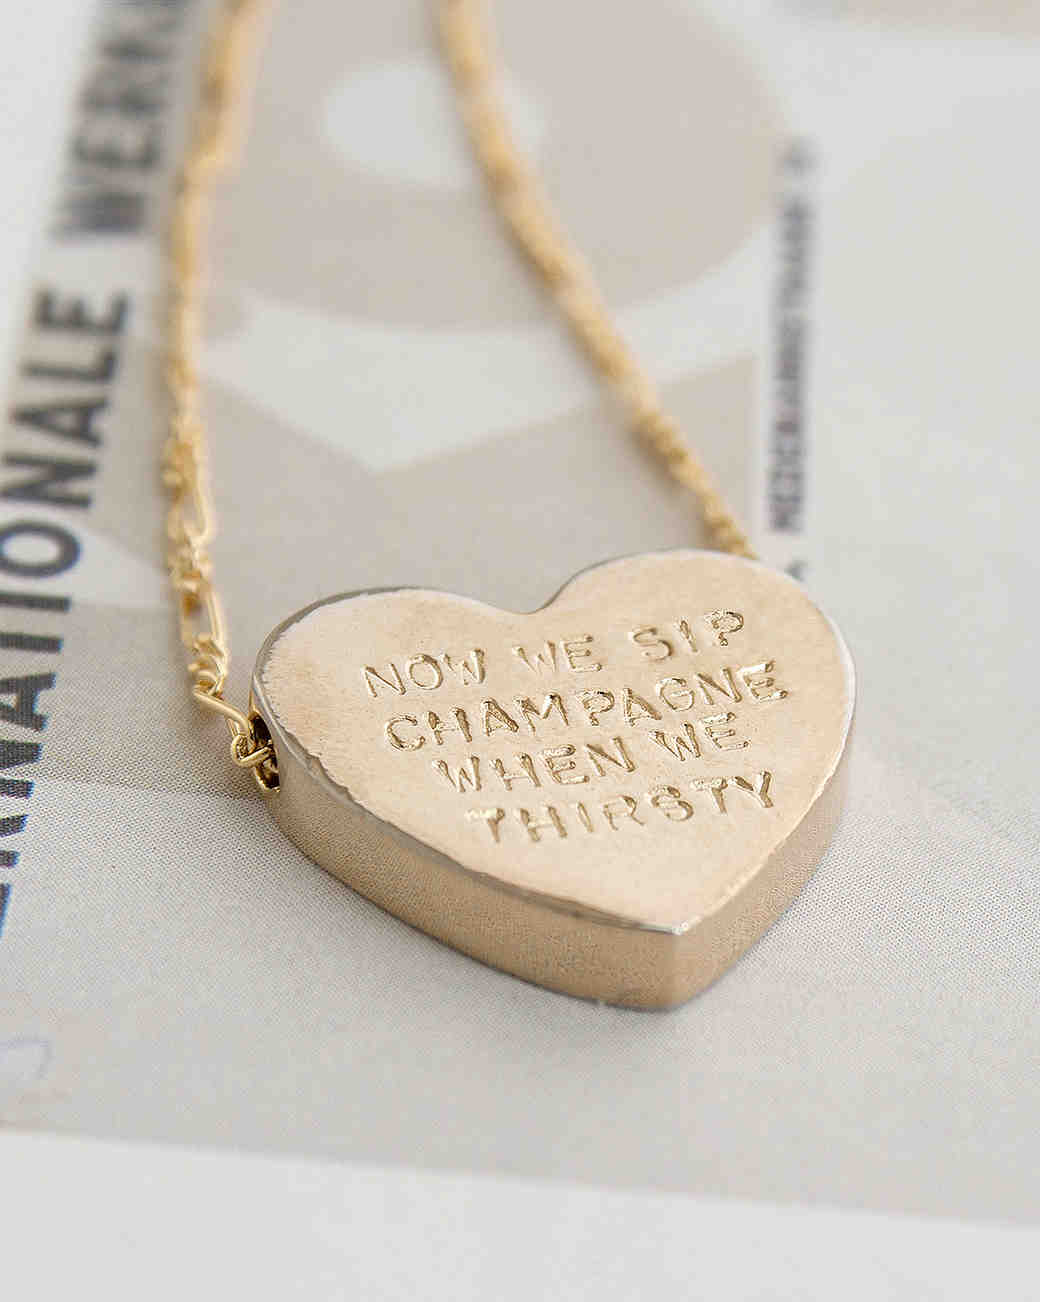 bridesmaid-gifts-erica-weiner-heartbeats-necklace-0914.jpg